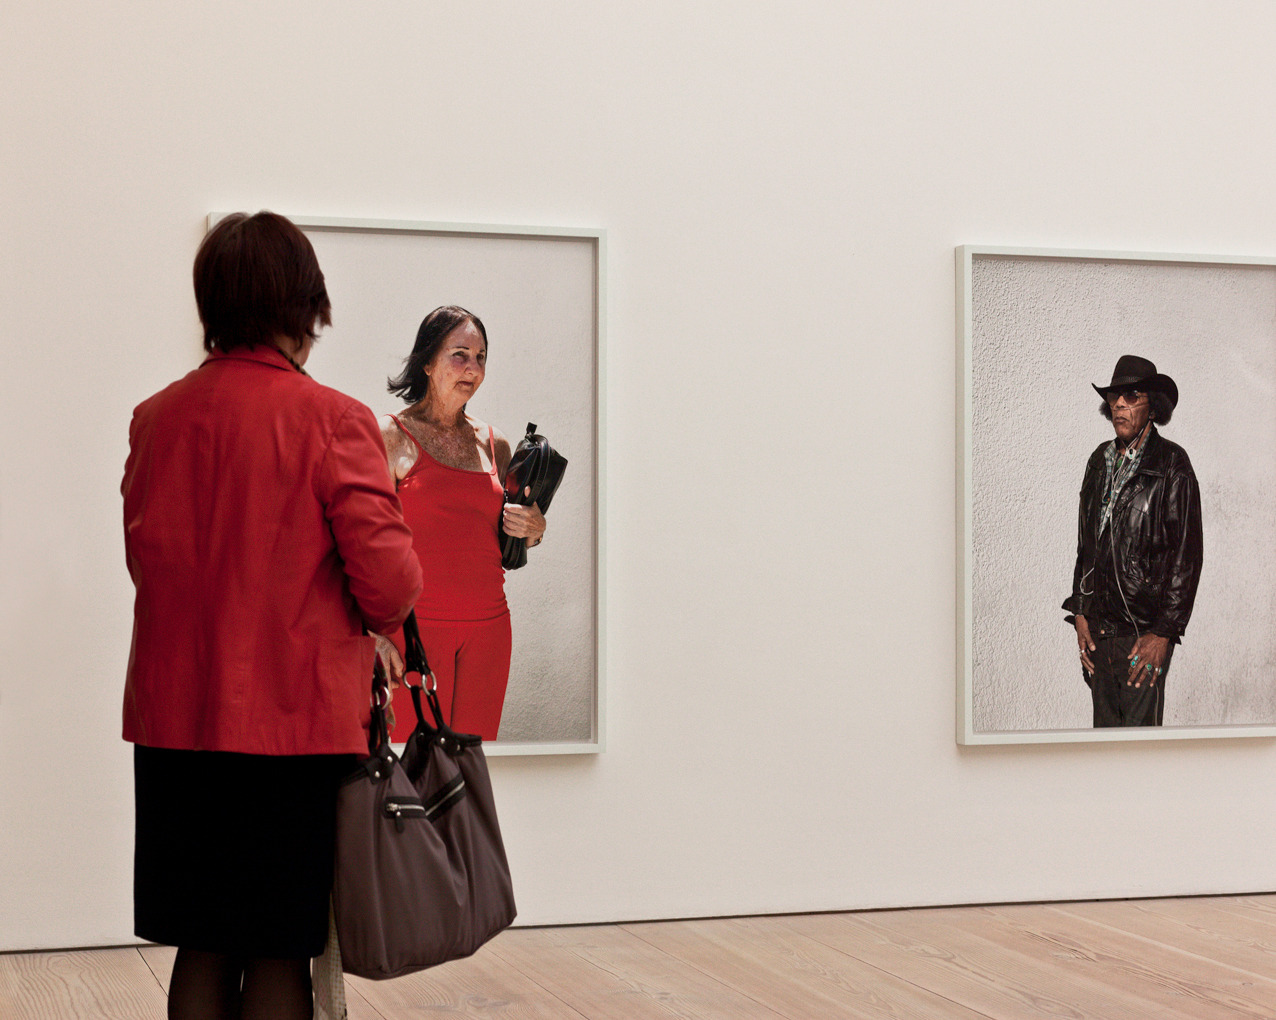 Saatchi Gallery, 'Out of Focus' exhibition